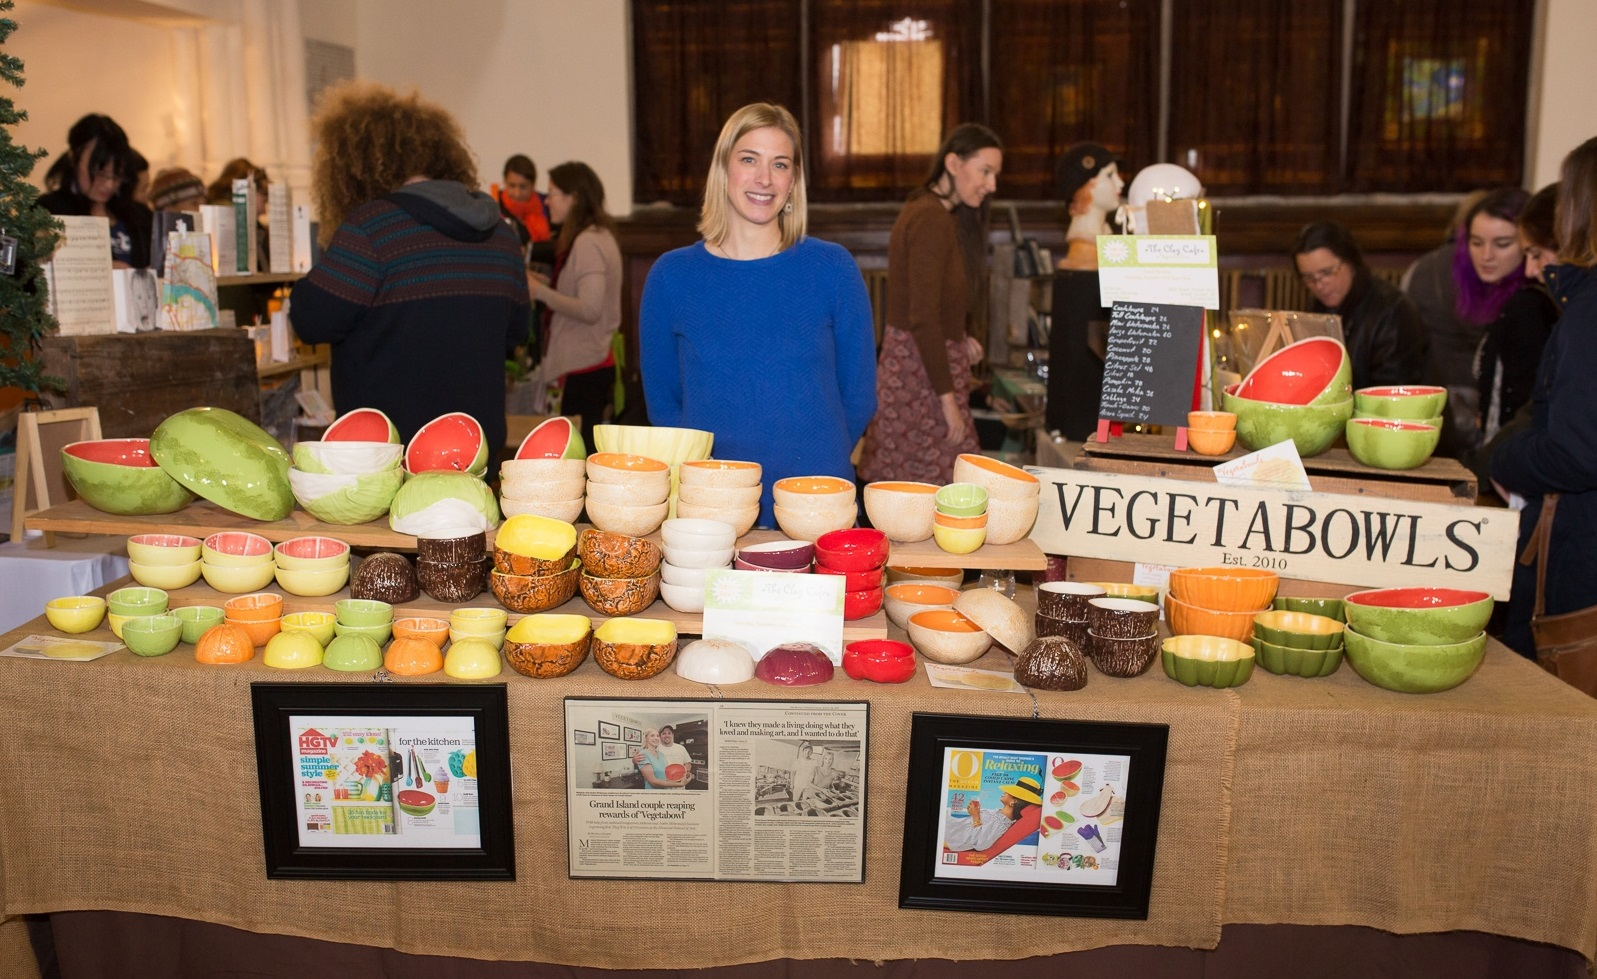 A peek at Vegetabowls' booth at the 2015 Queen City Market. (Chuck Alaimo/Special to The News)